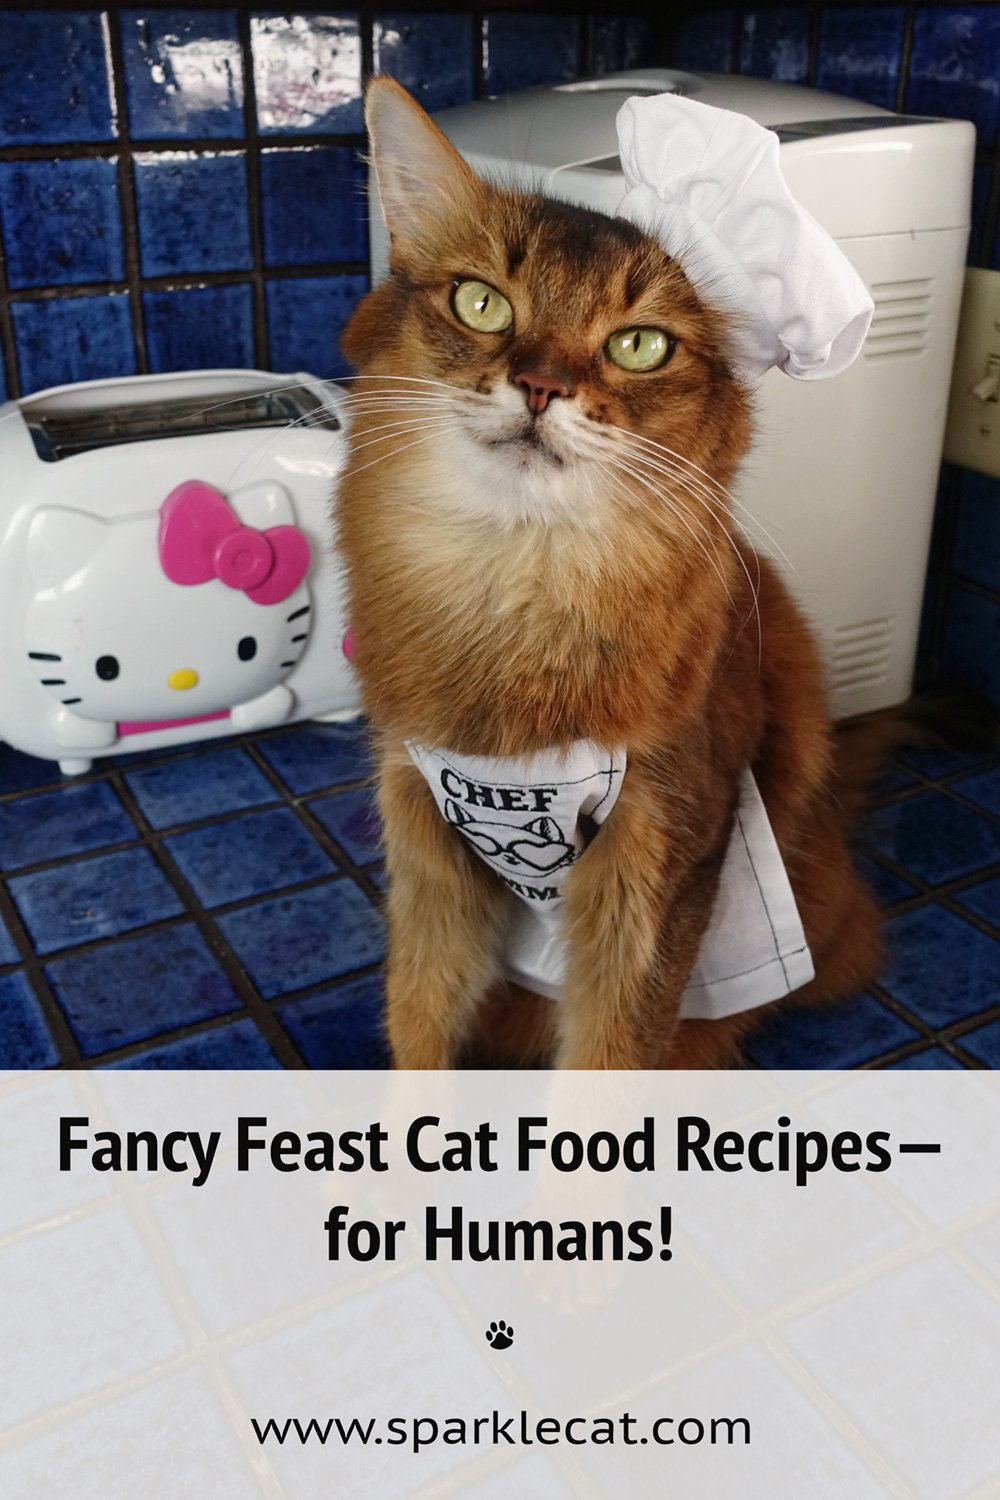 My New Kitchen Role: Chef Cat